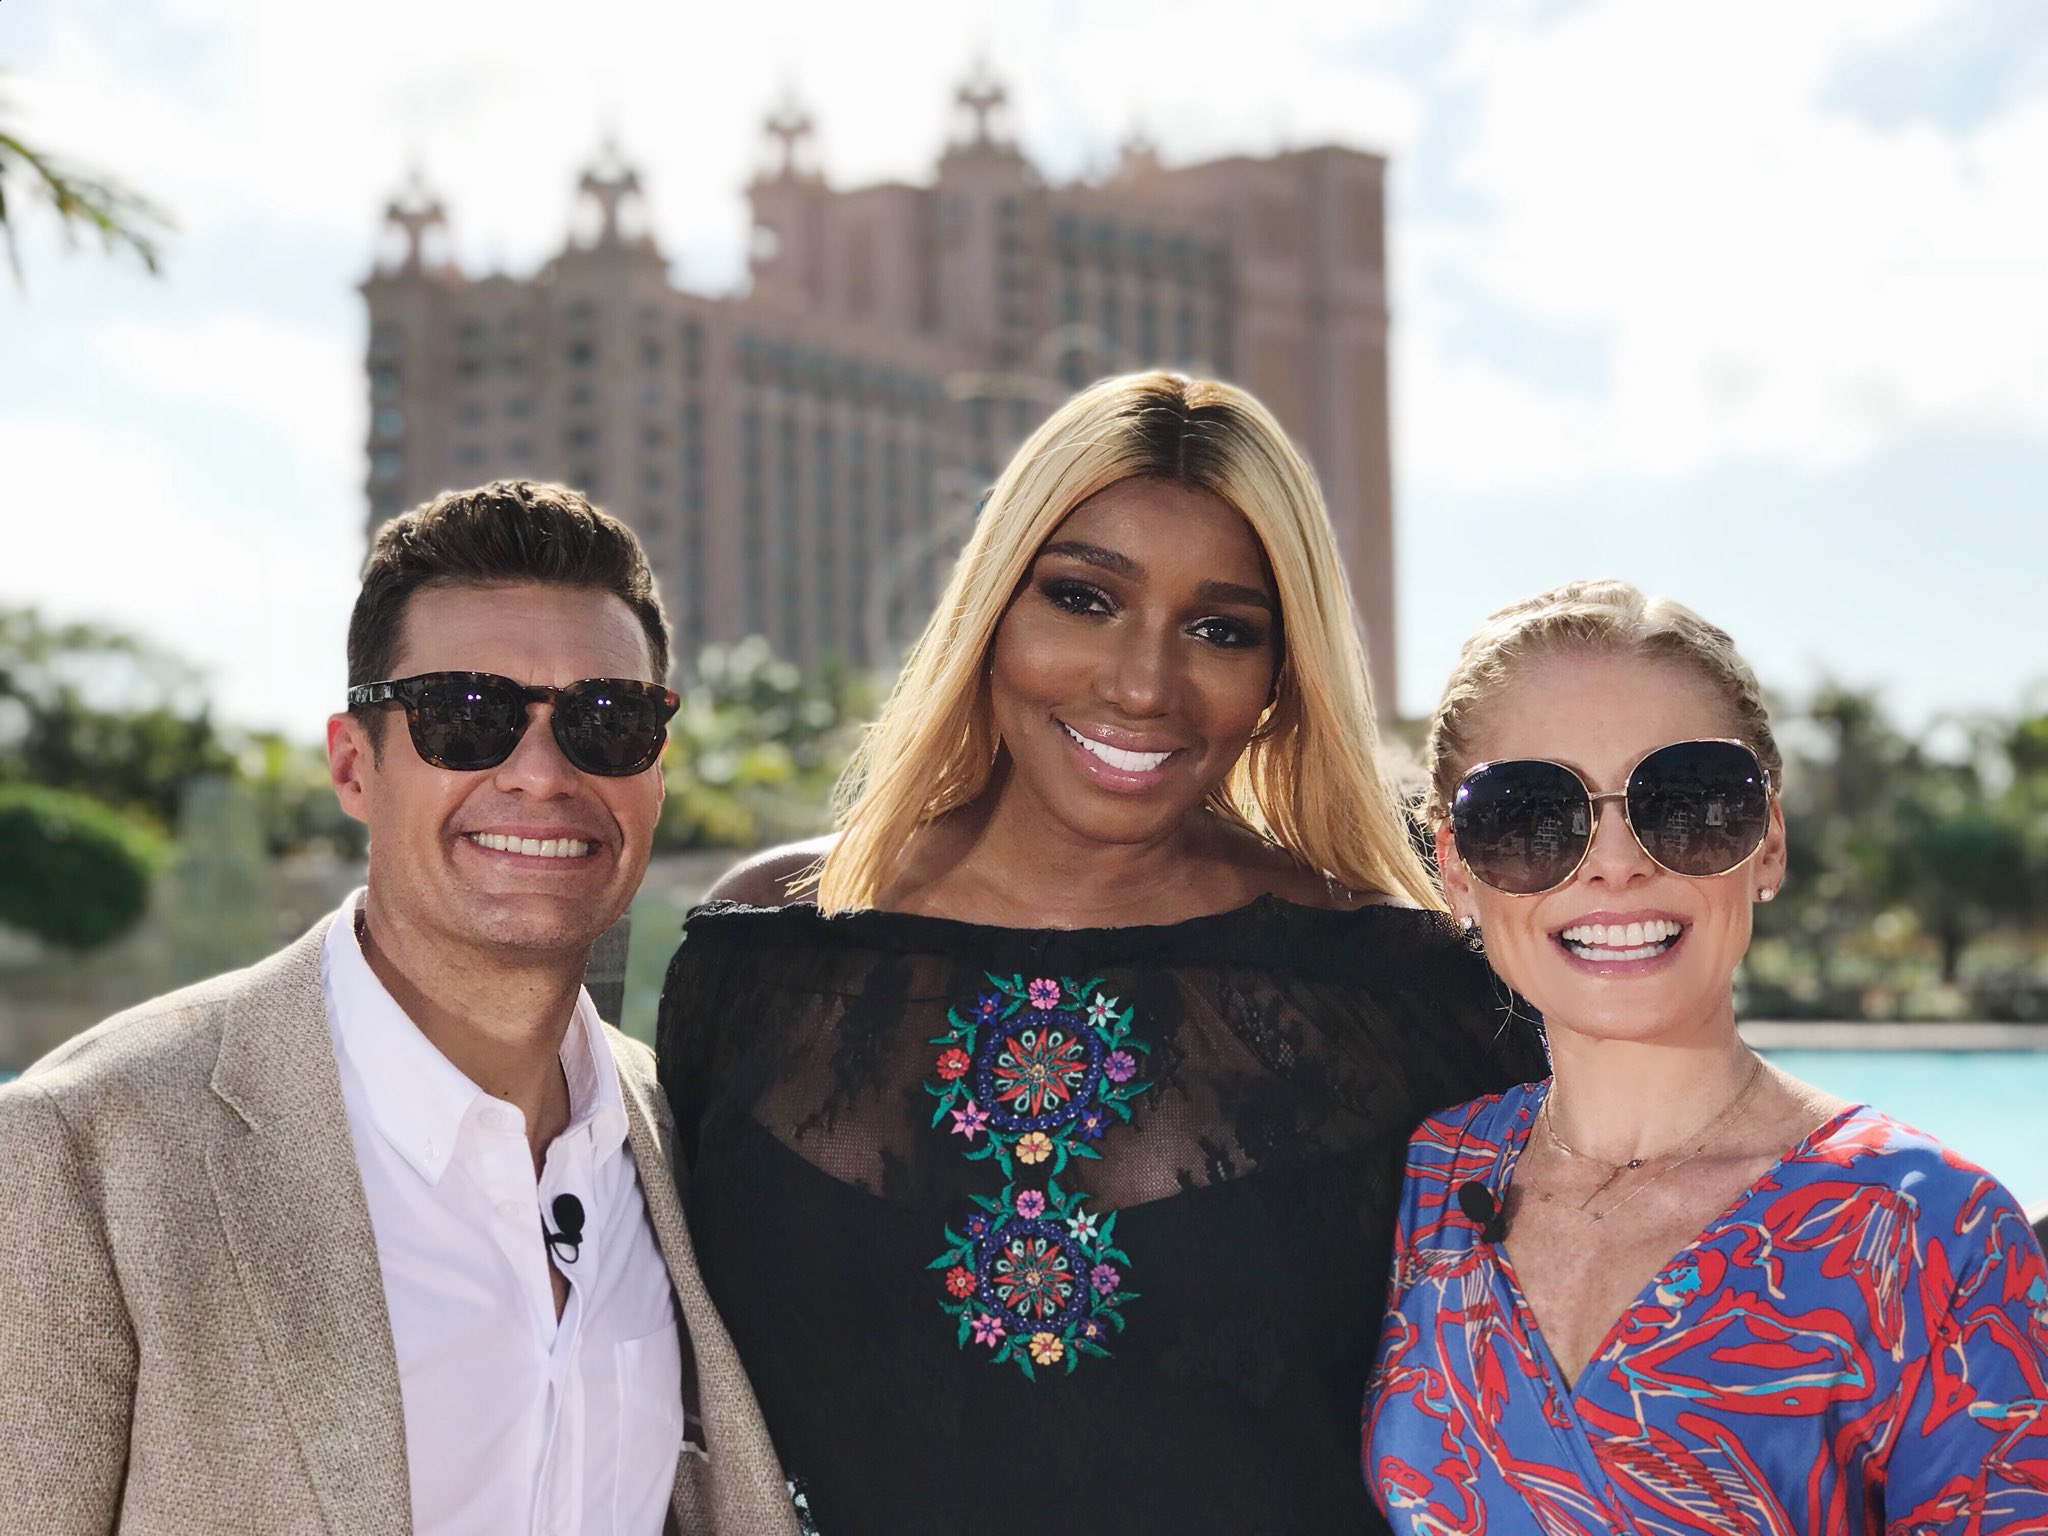 The Real Housewives of Atlantis coming soon #kellyandryanatlantis #itsbetterinthebahamas https://t.co/LlPnN3y9Yk